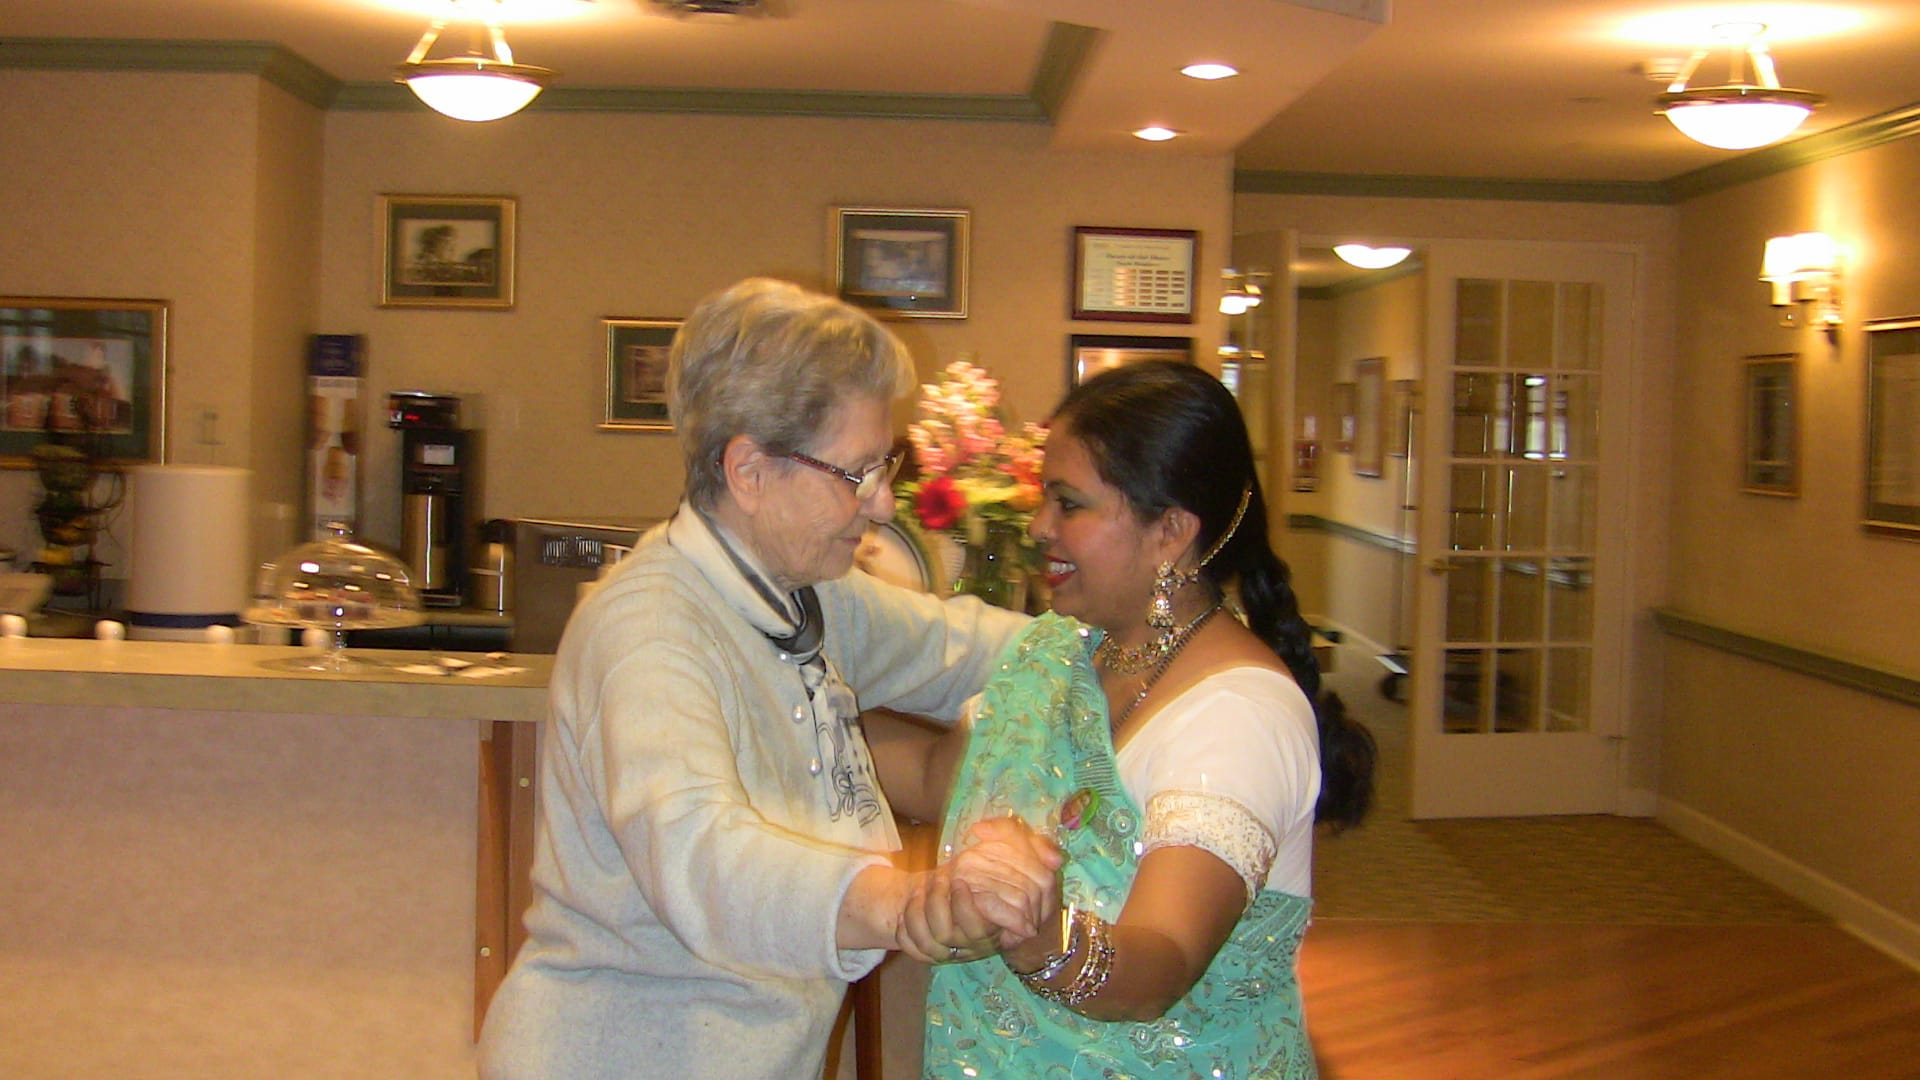 Day 10 – Canadian Seniors @ Sunrise Centre enjoying Sahaja Yoga Meditation in Mississauga – Feedback from Anandita's Visit